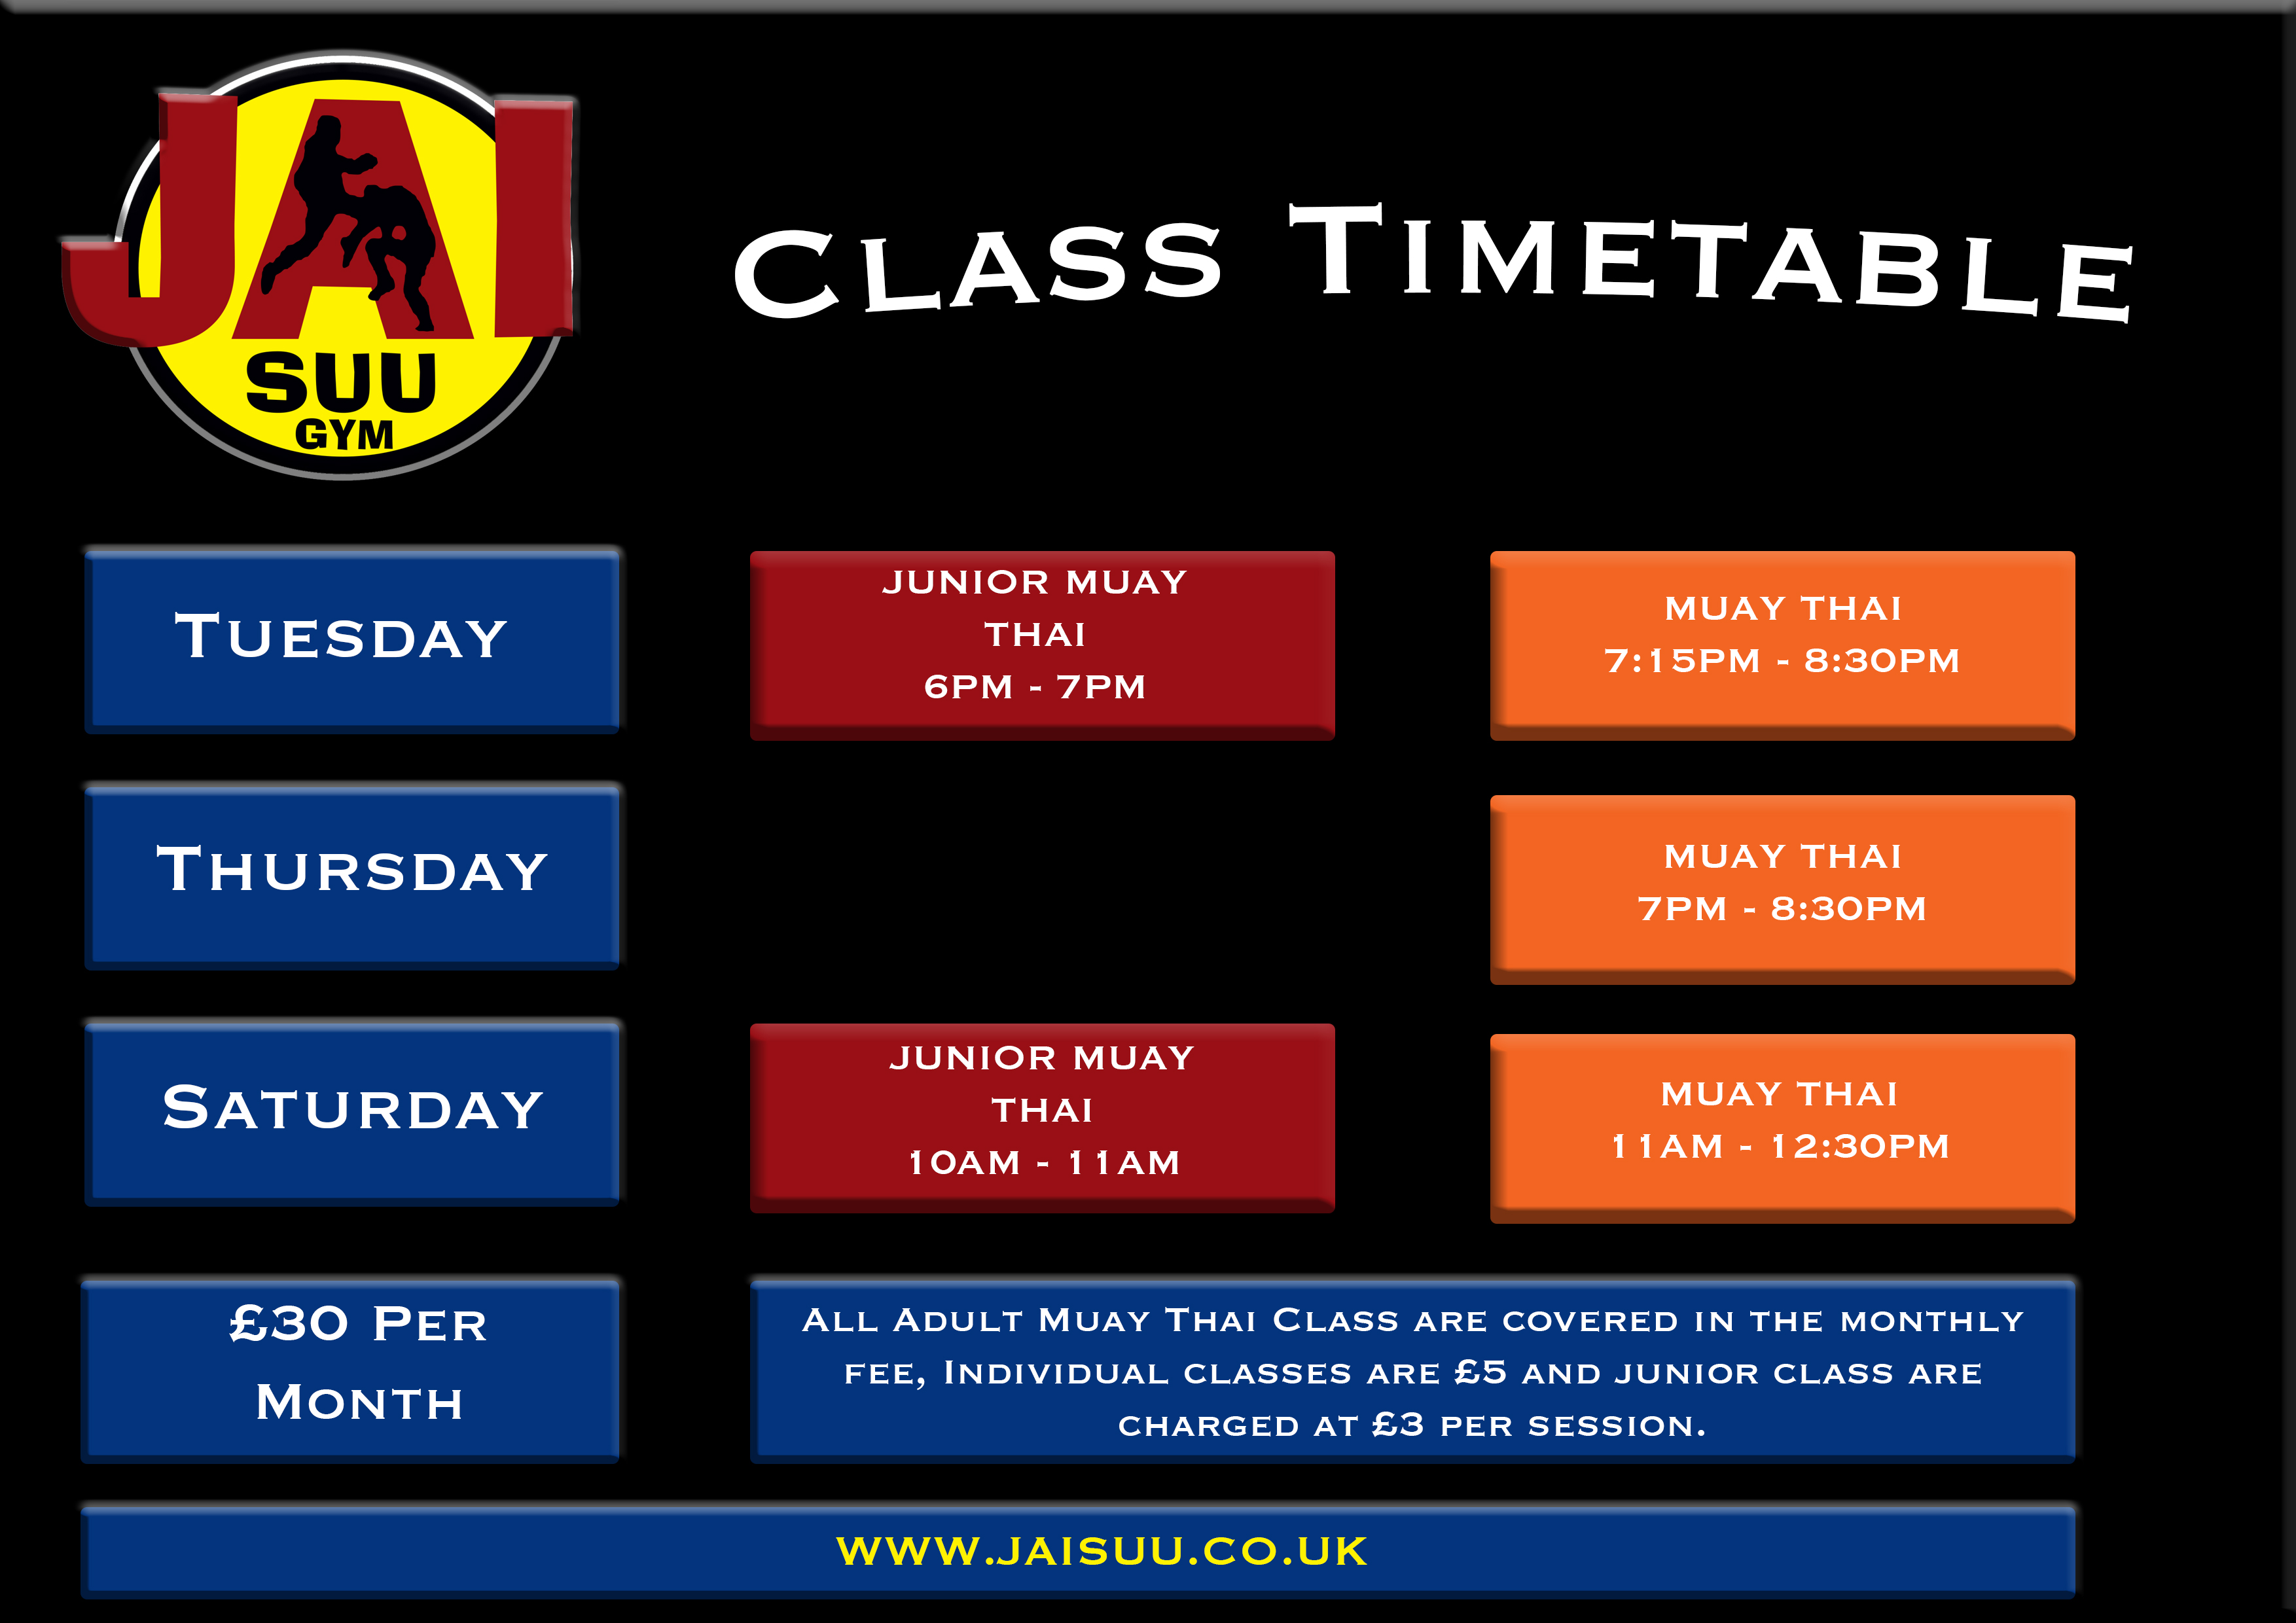 Time Table 21.4.19